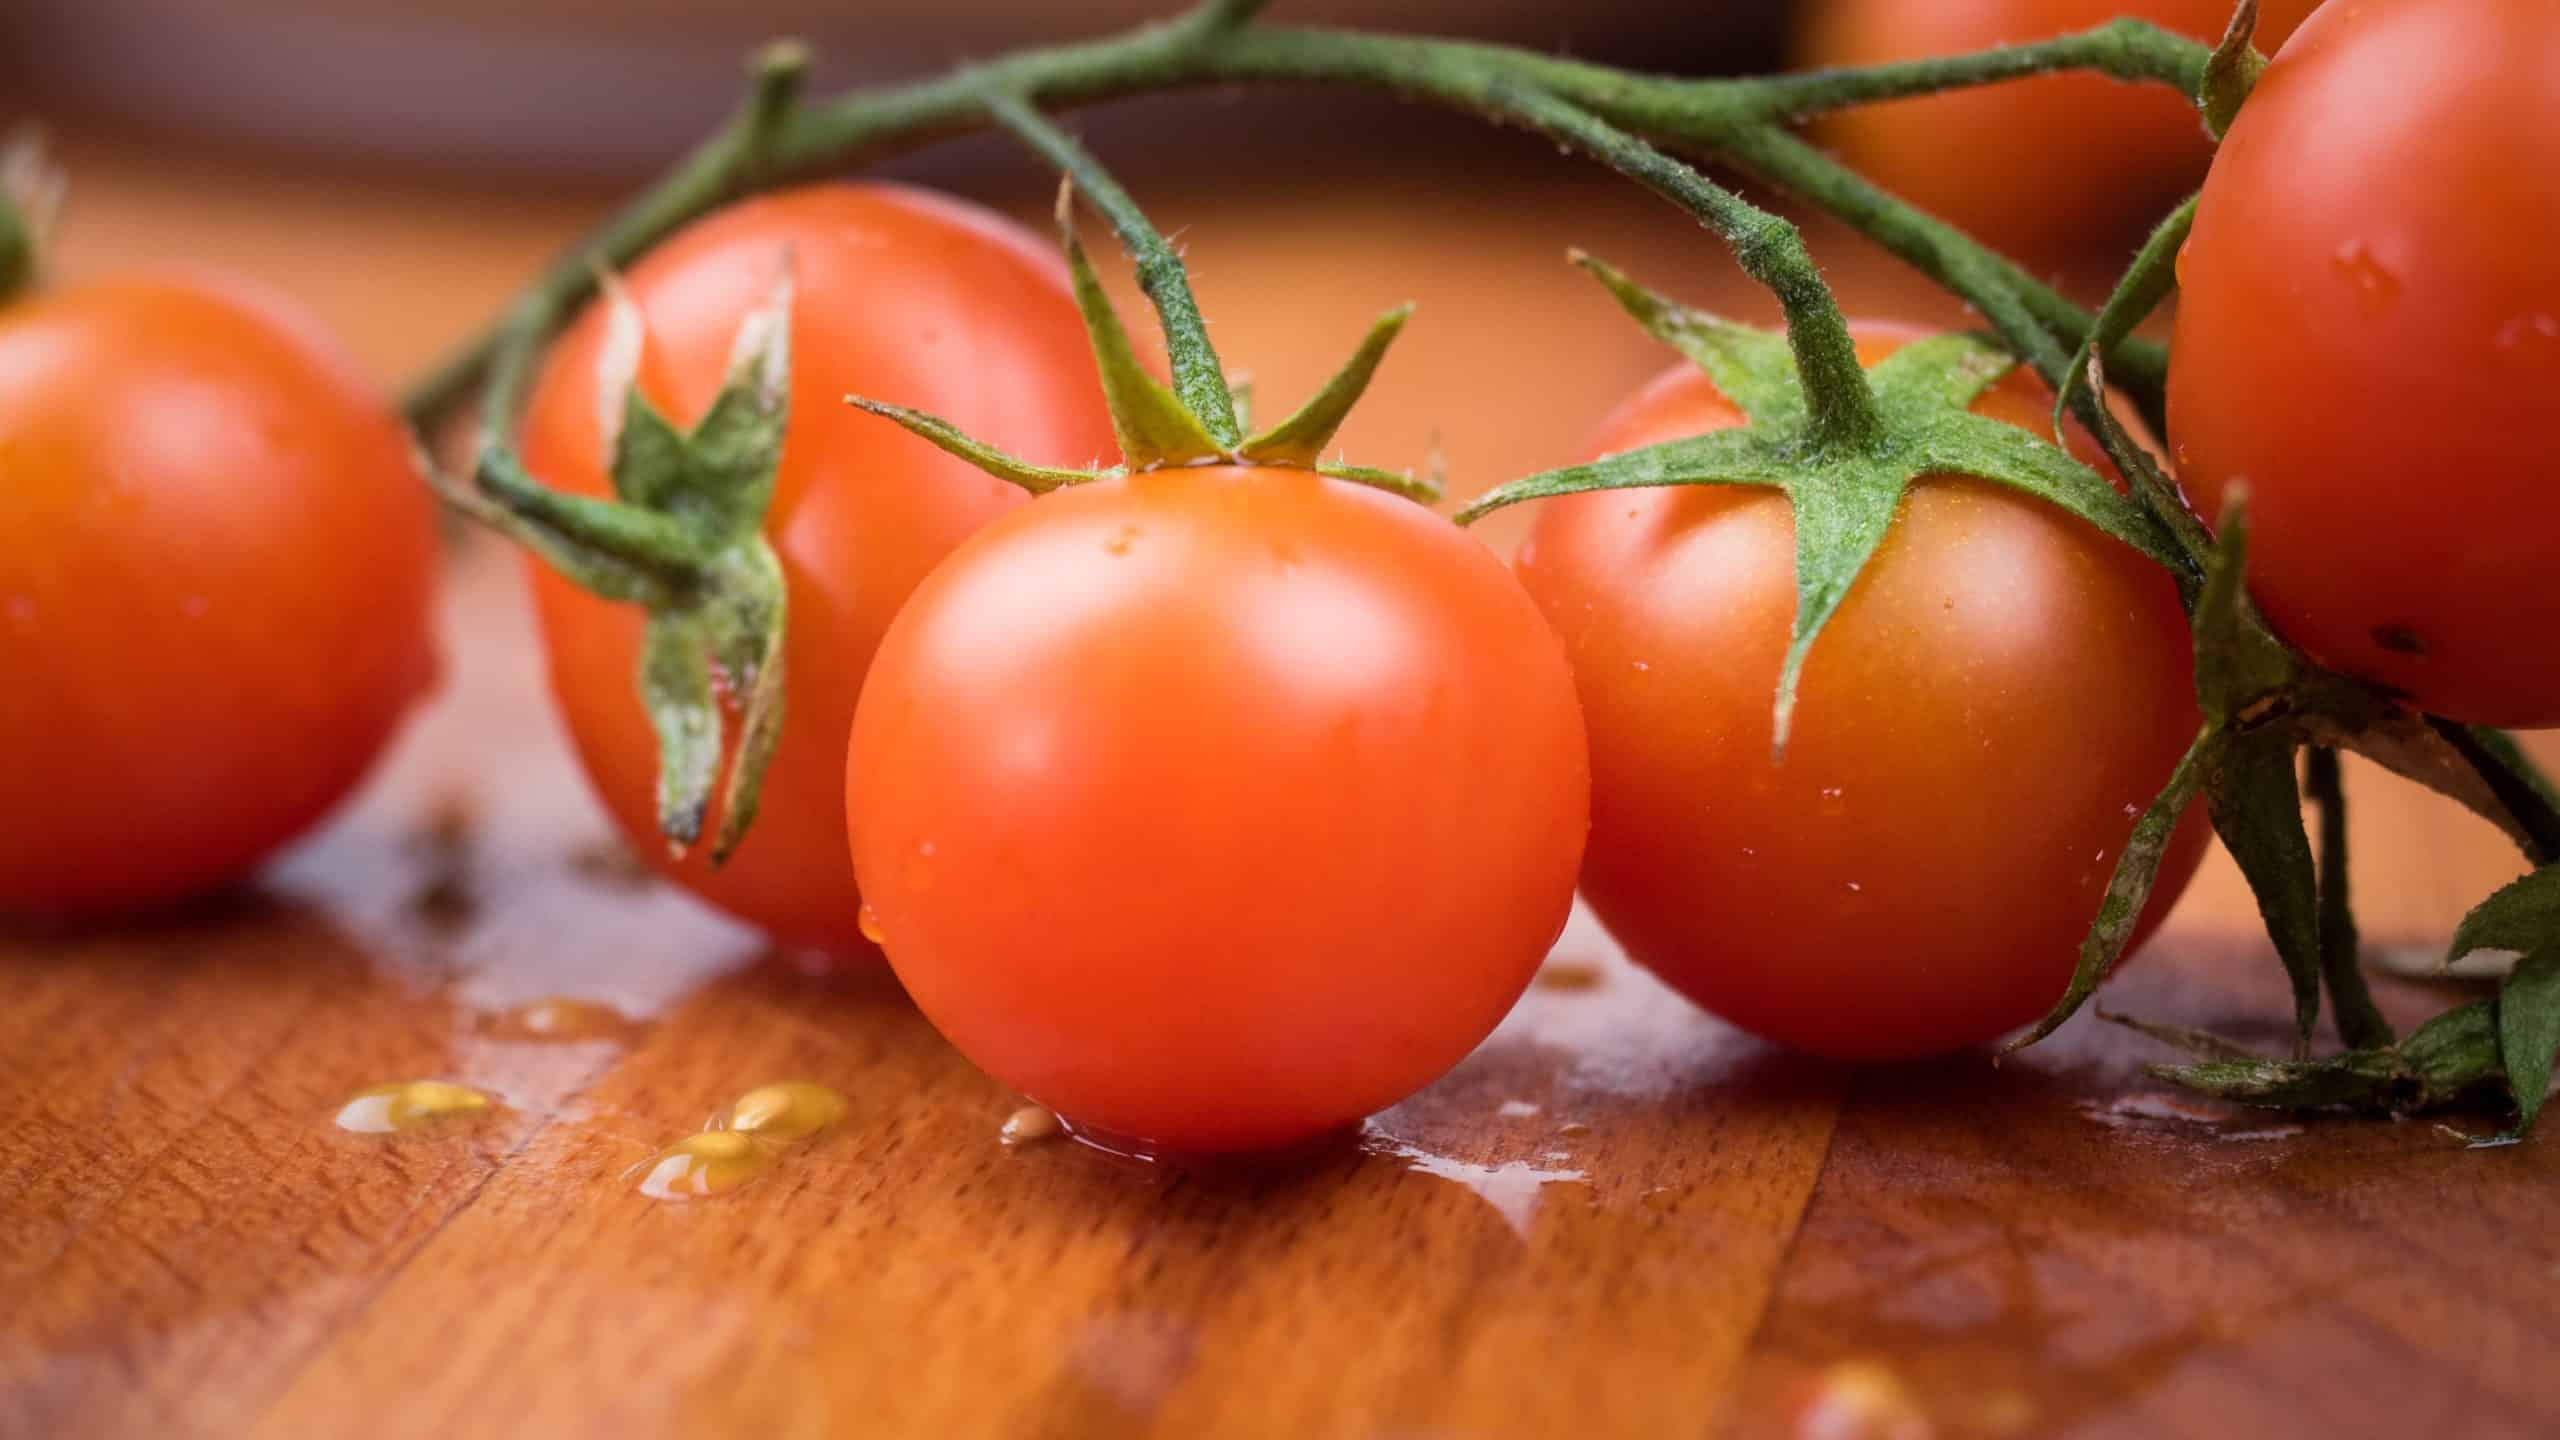 Mediterranean Cuisine: Some Of The Popular Dishes Of This Cuisine